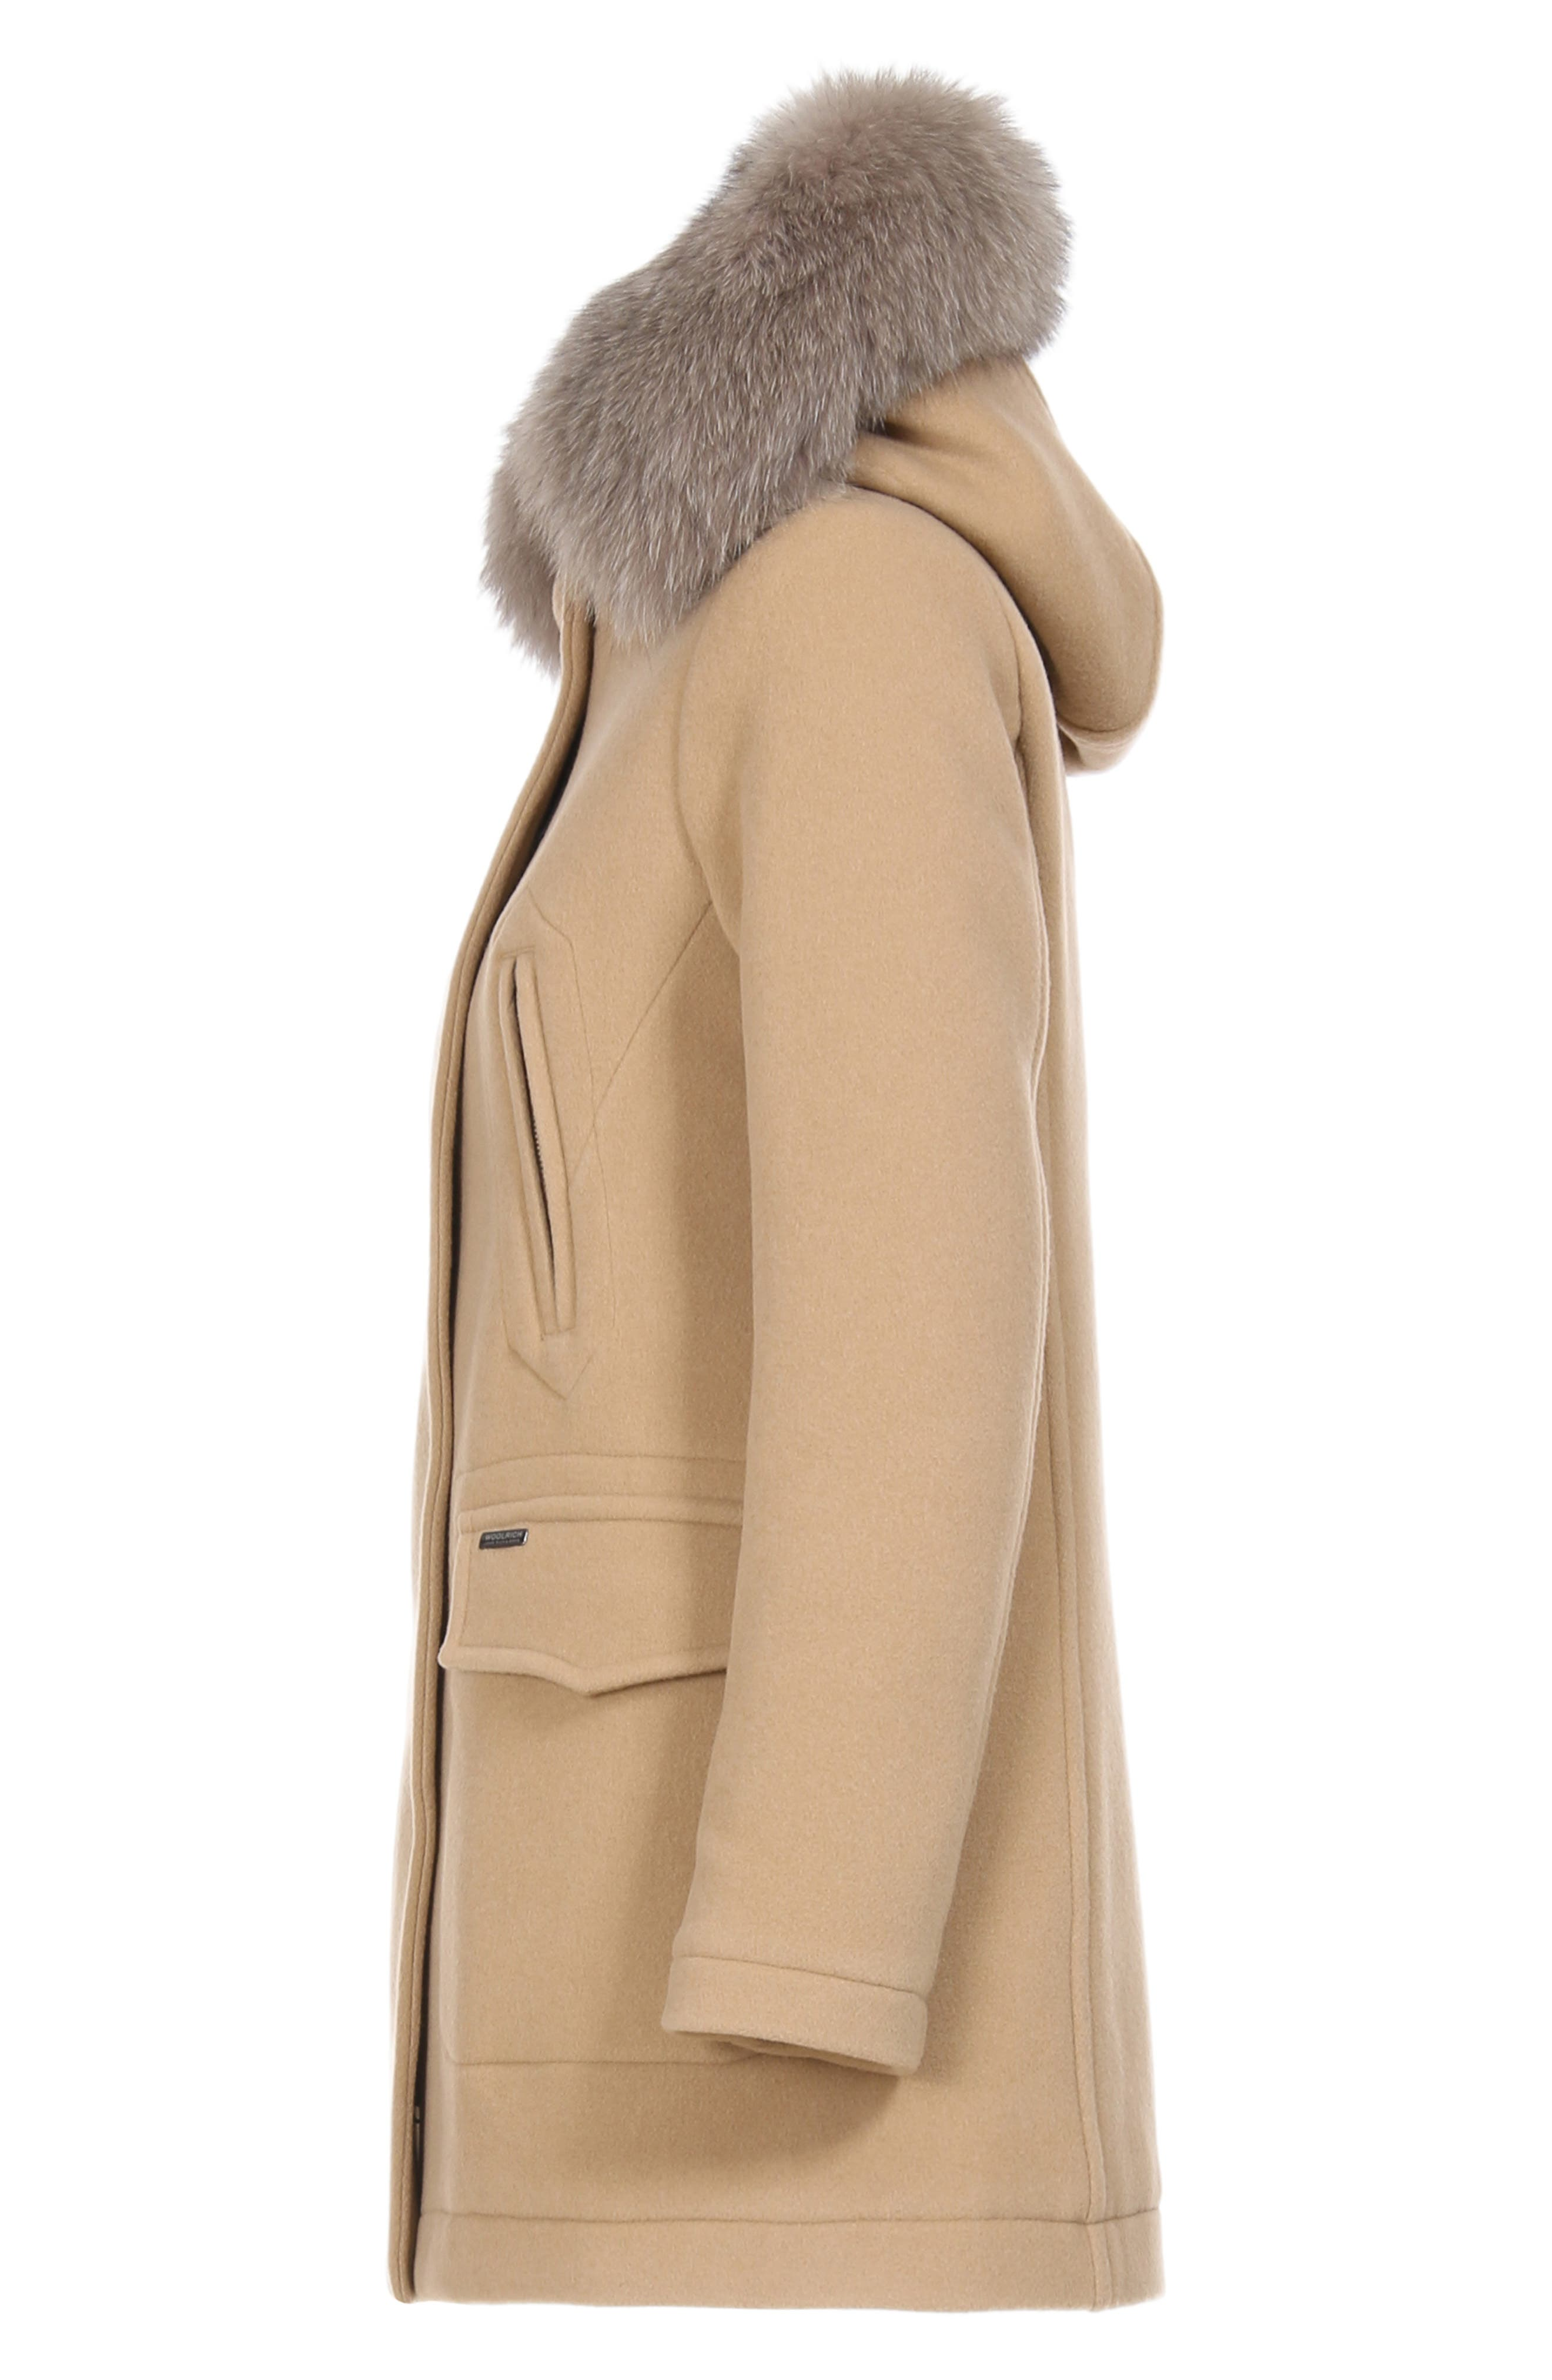 McKenzie Coat with Genuine Fox Fur Trim,                             Alternate thumbnail 6, color,                             CAMEL